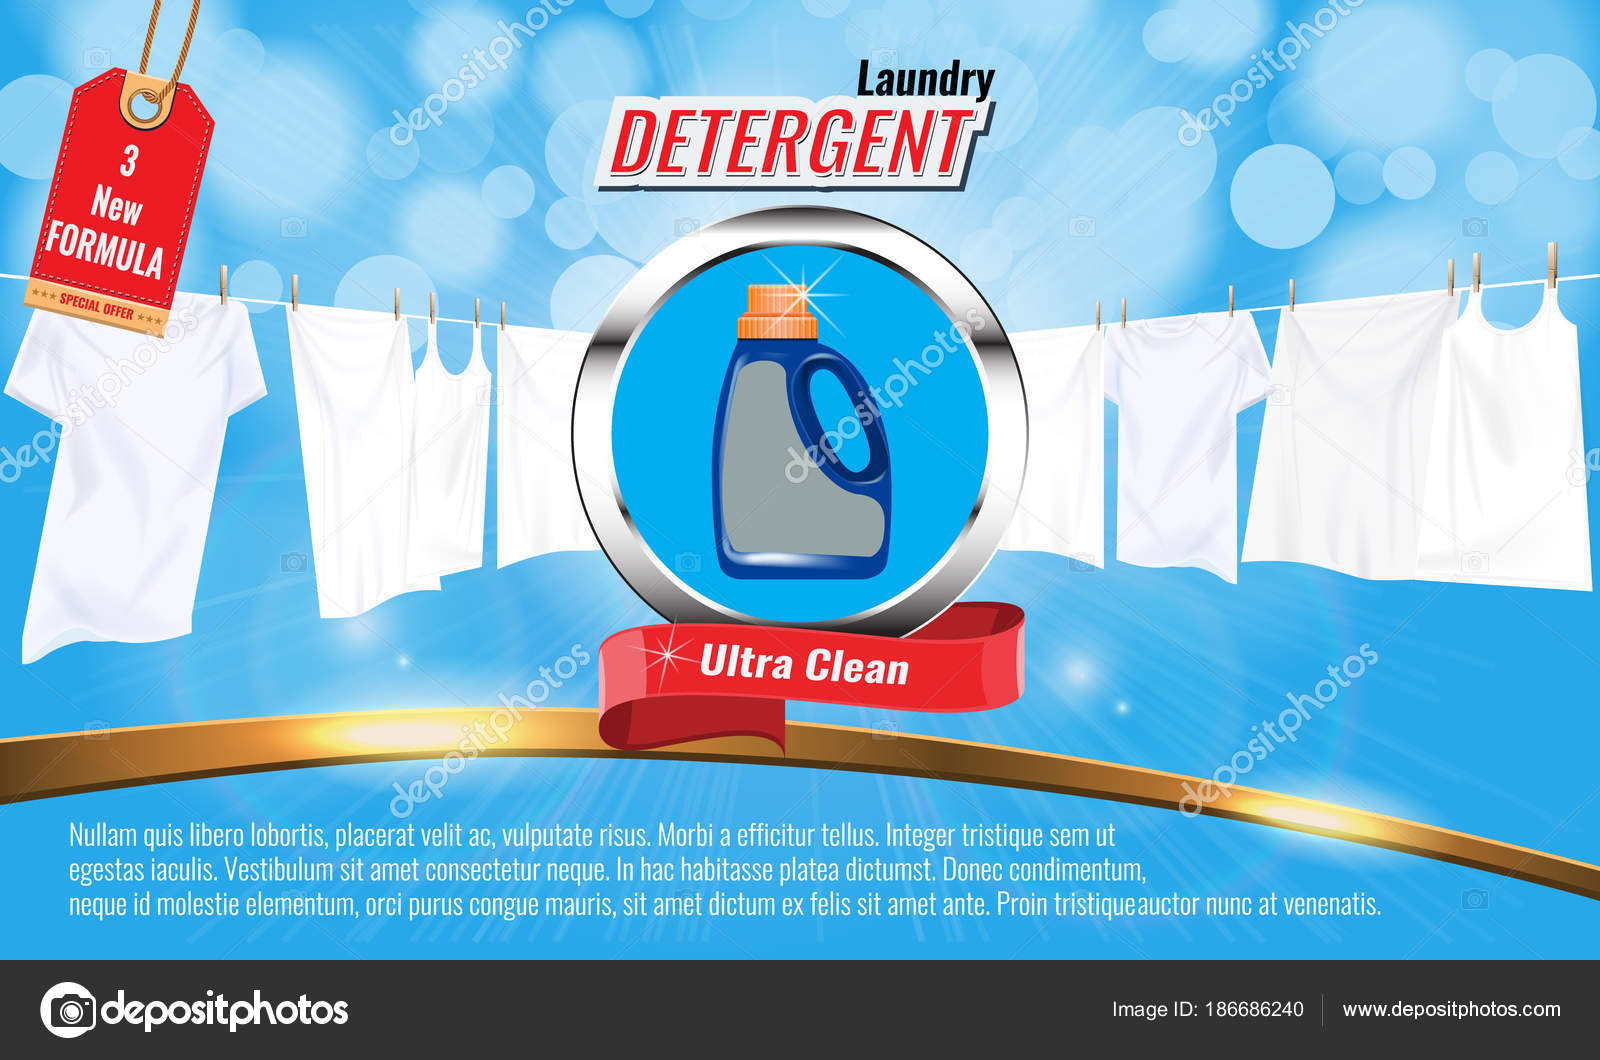 laundry detergent ads template